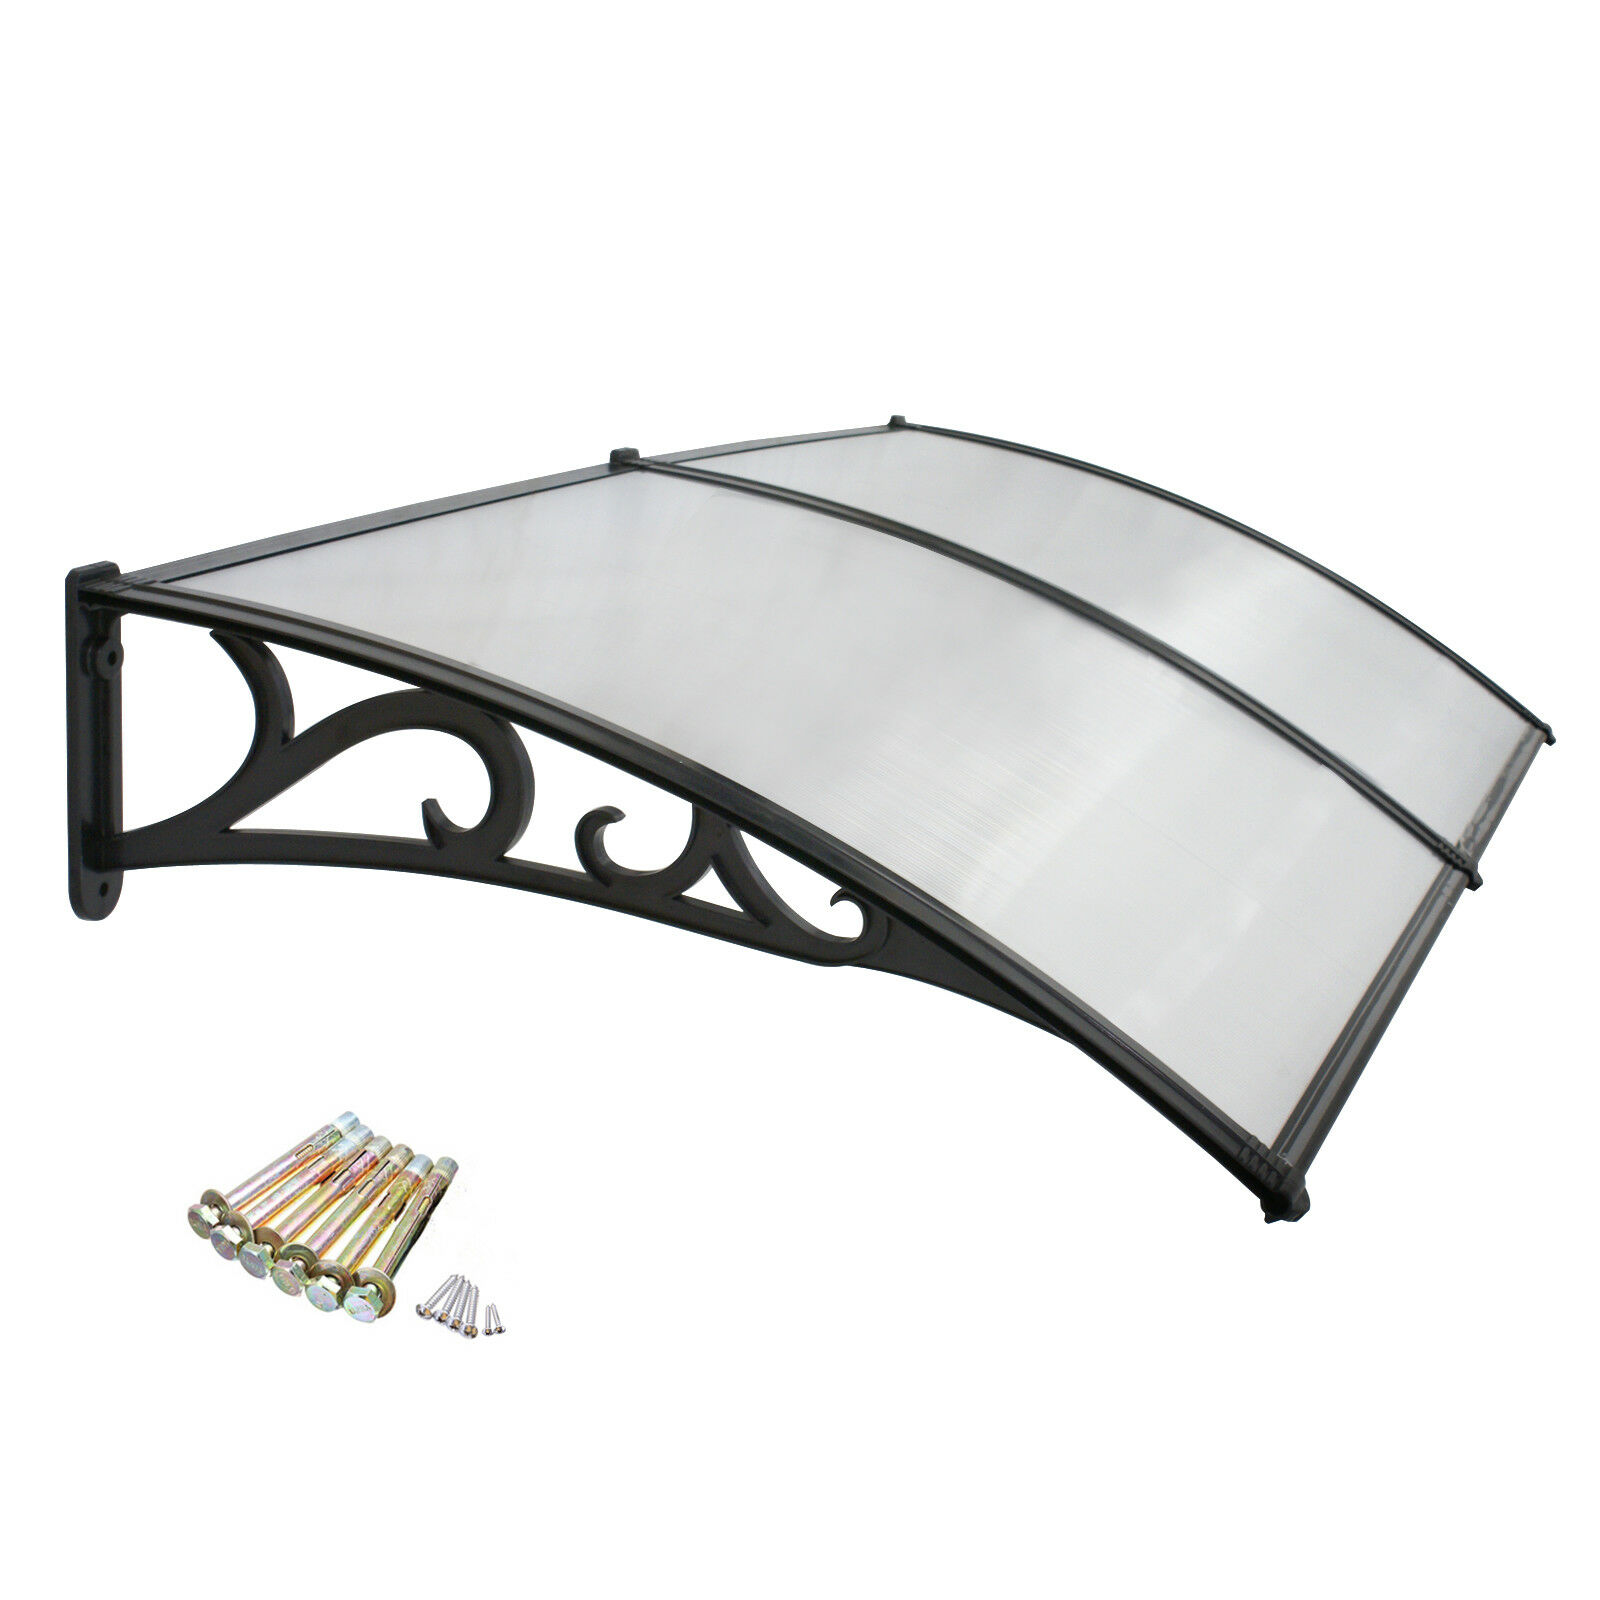 80″ x 40″ Window Canopy Awning Door Complete Polycarbonate Sheet Patio Outdoor Awnings & Canopies